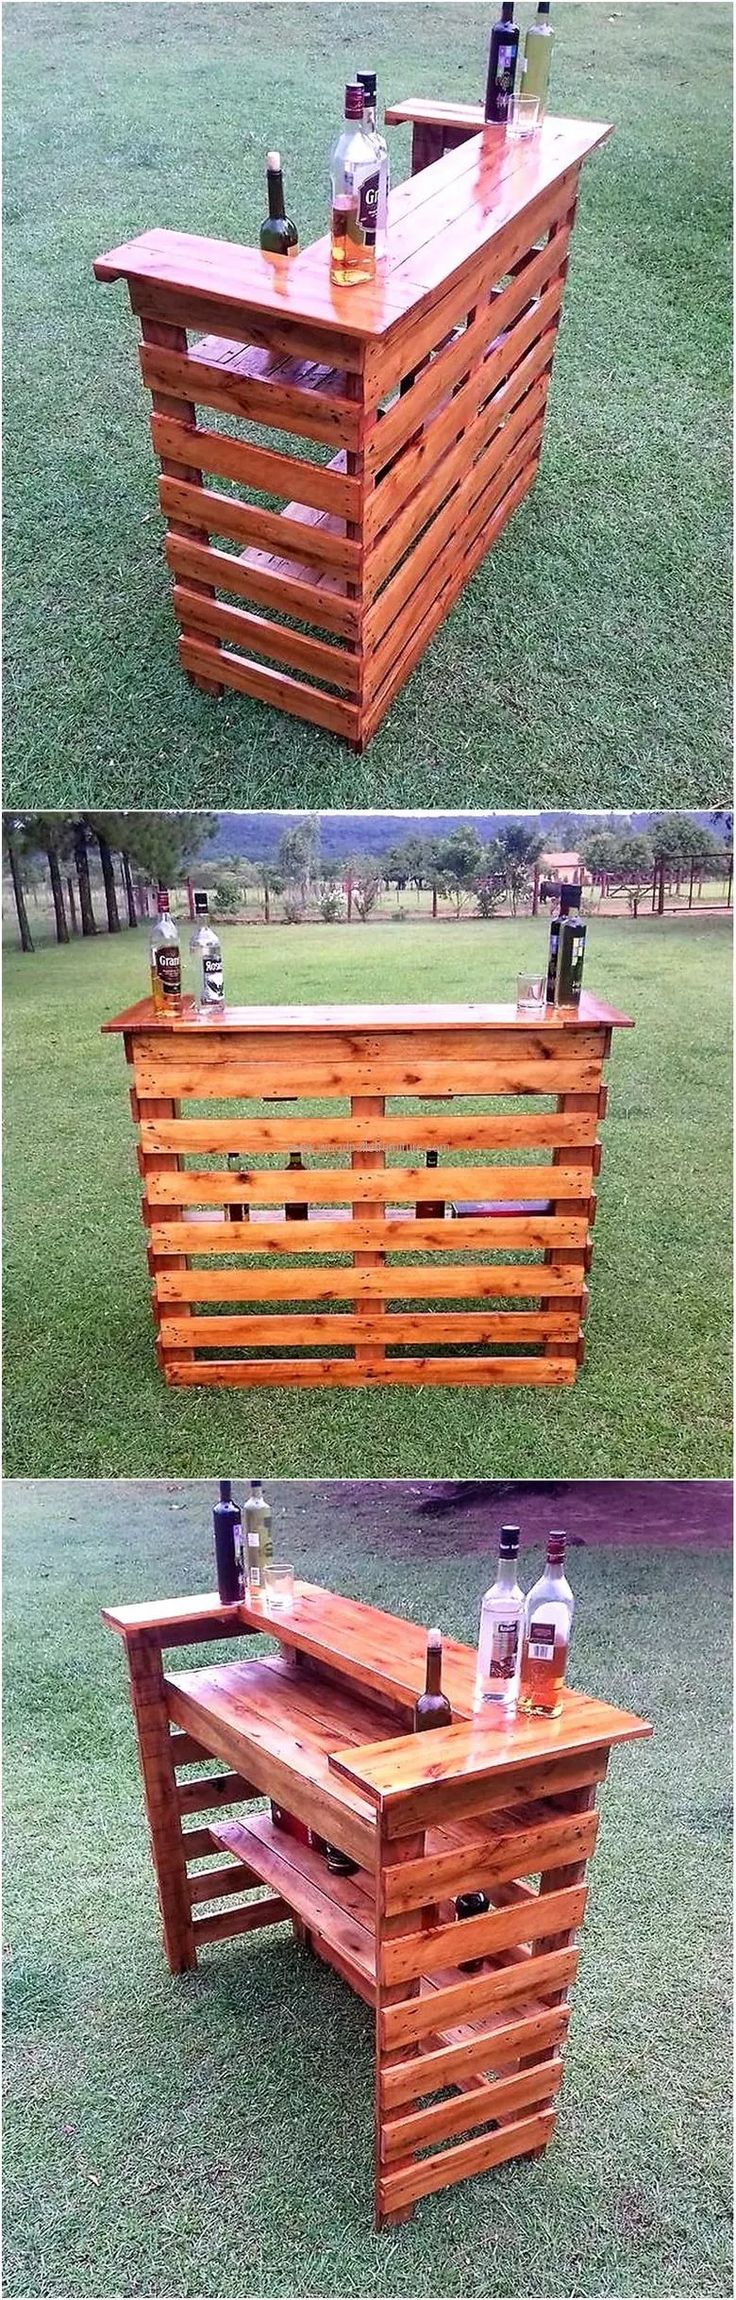 25 best ideas about pallets on pinterest pallet ideas diy pallet and pallet projects - Diy projects with wooden palletsideas easy to carry out ...